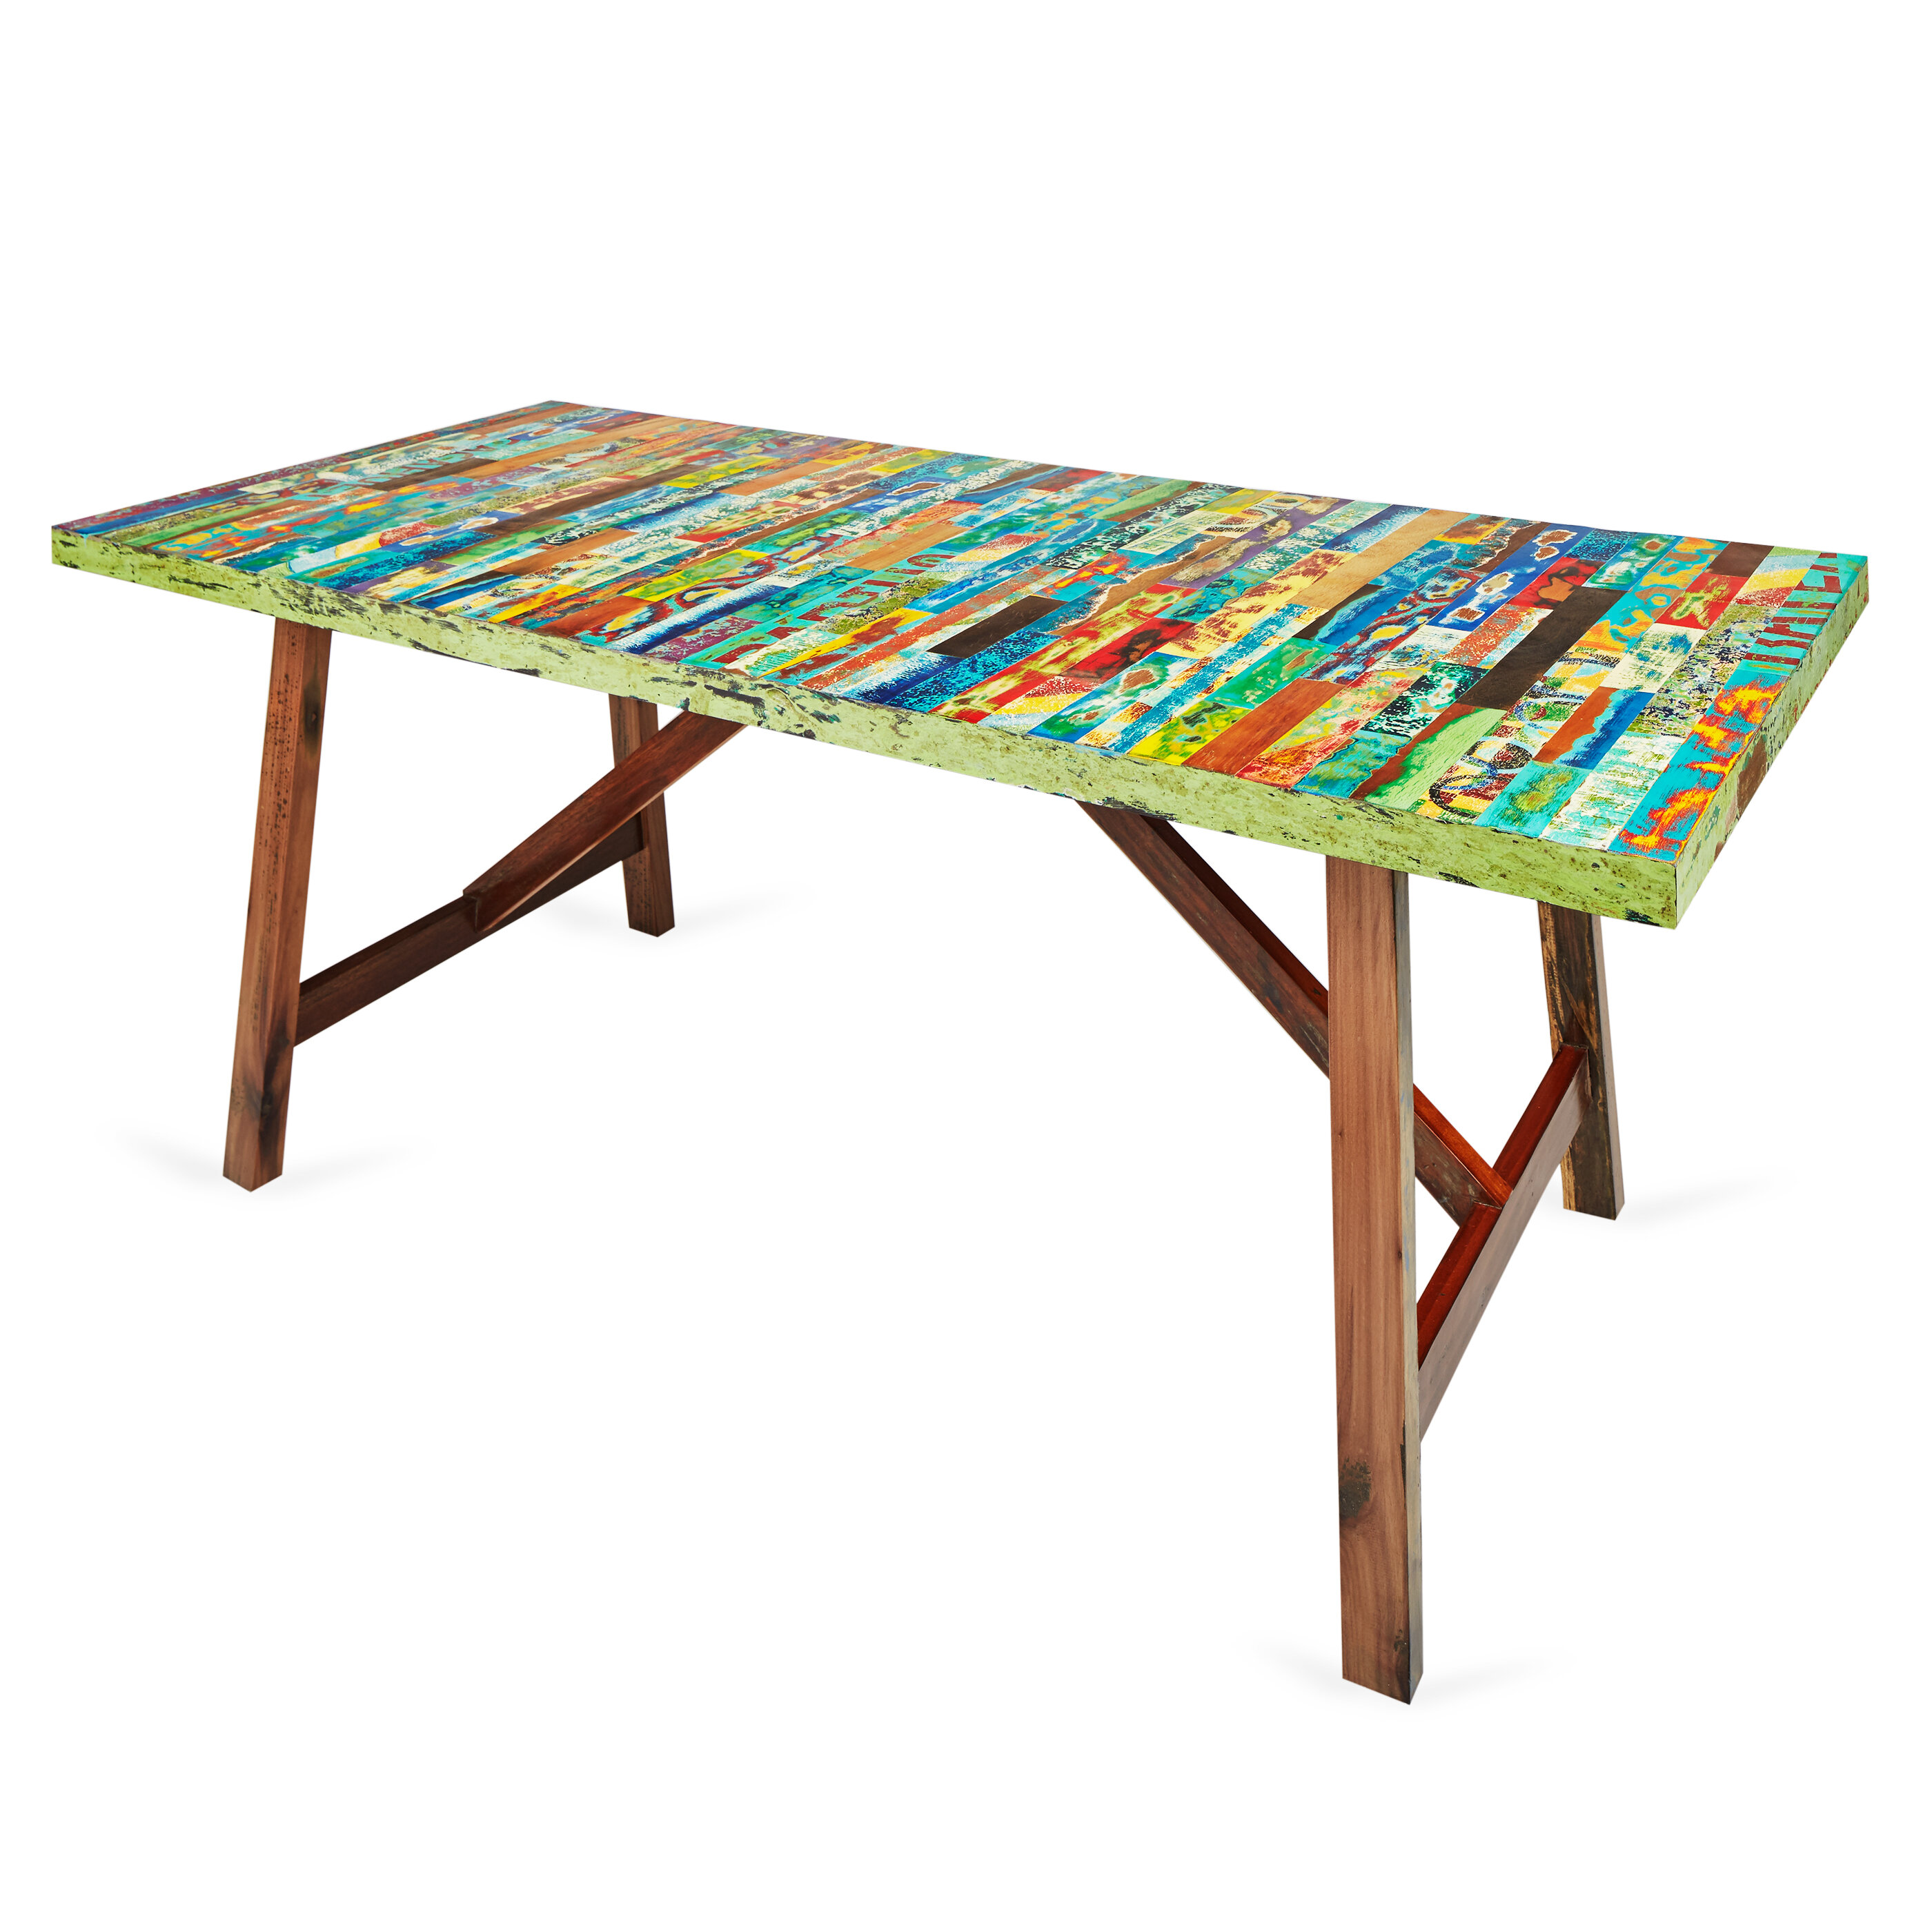 Good EcoChic Lifestyles Buoy Crazy Dining Table | Wayfair